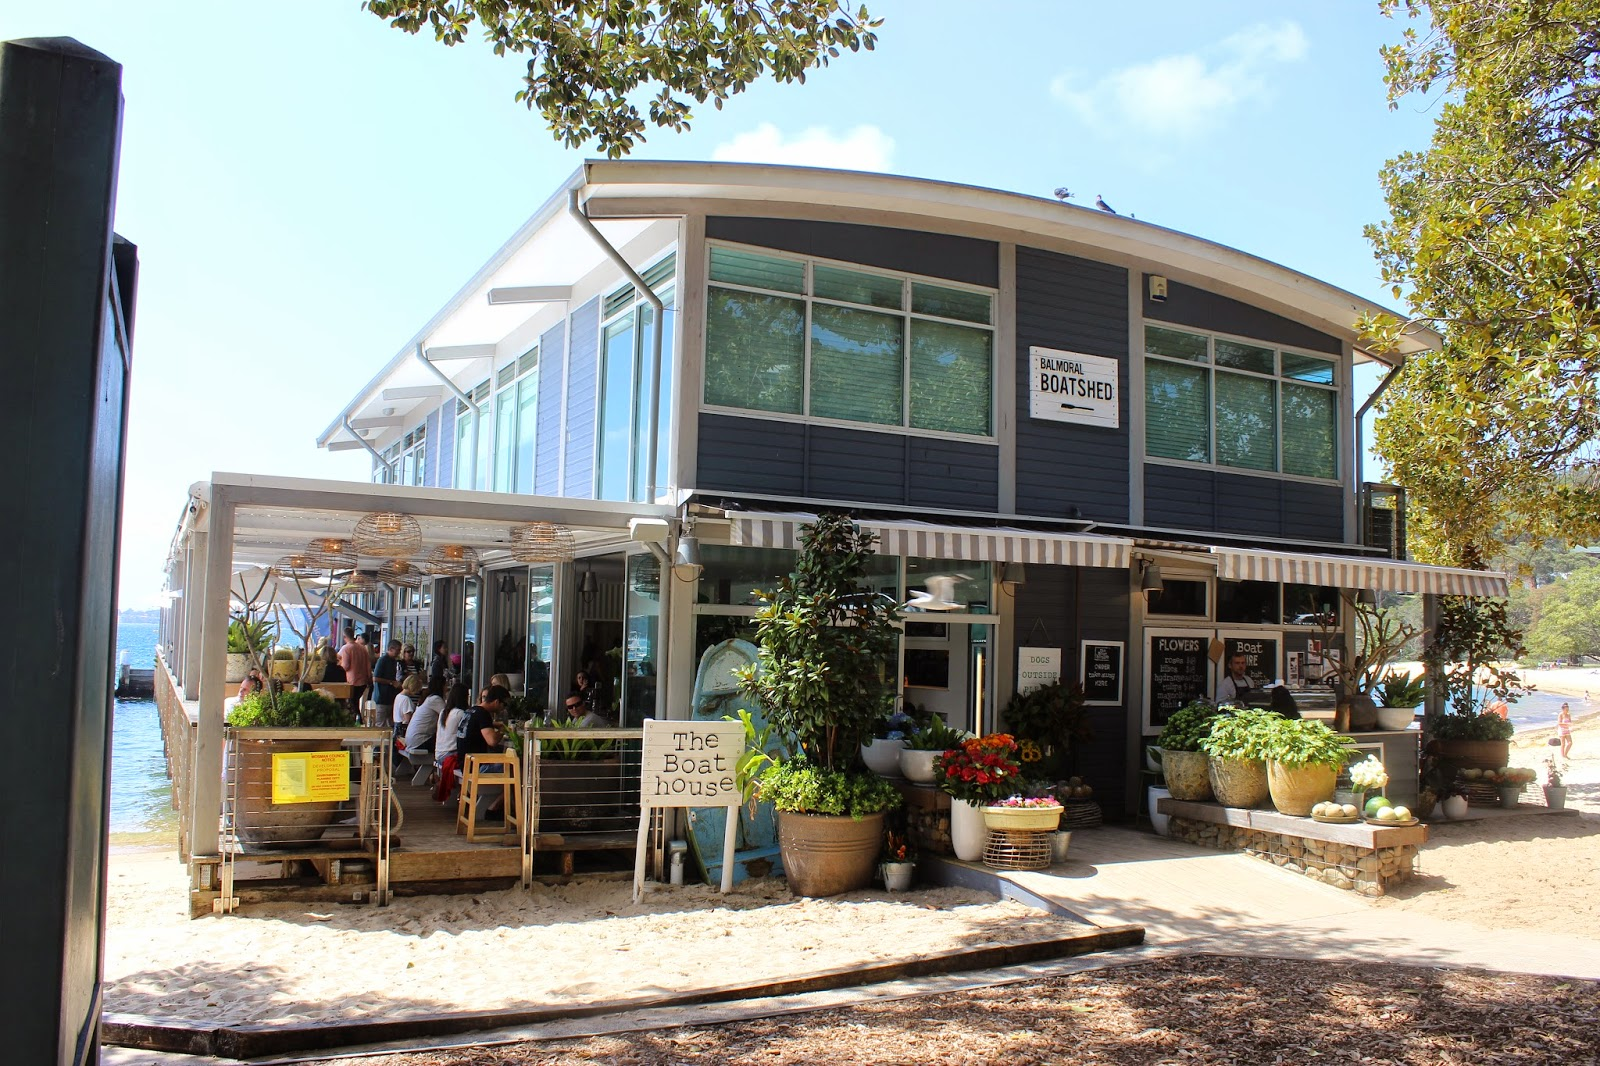 The Hungry Foodtech The Boathouse Balmoral Beach Mosman